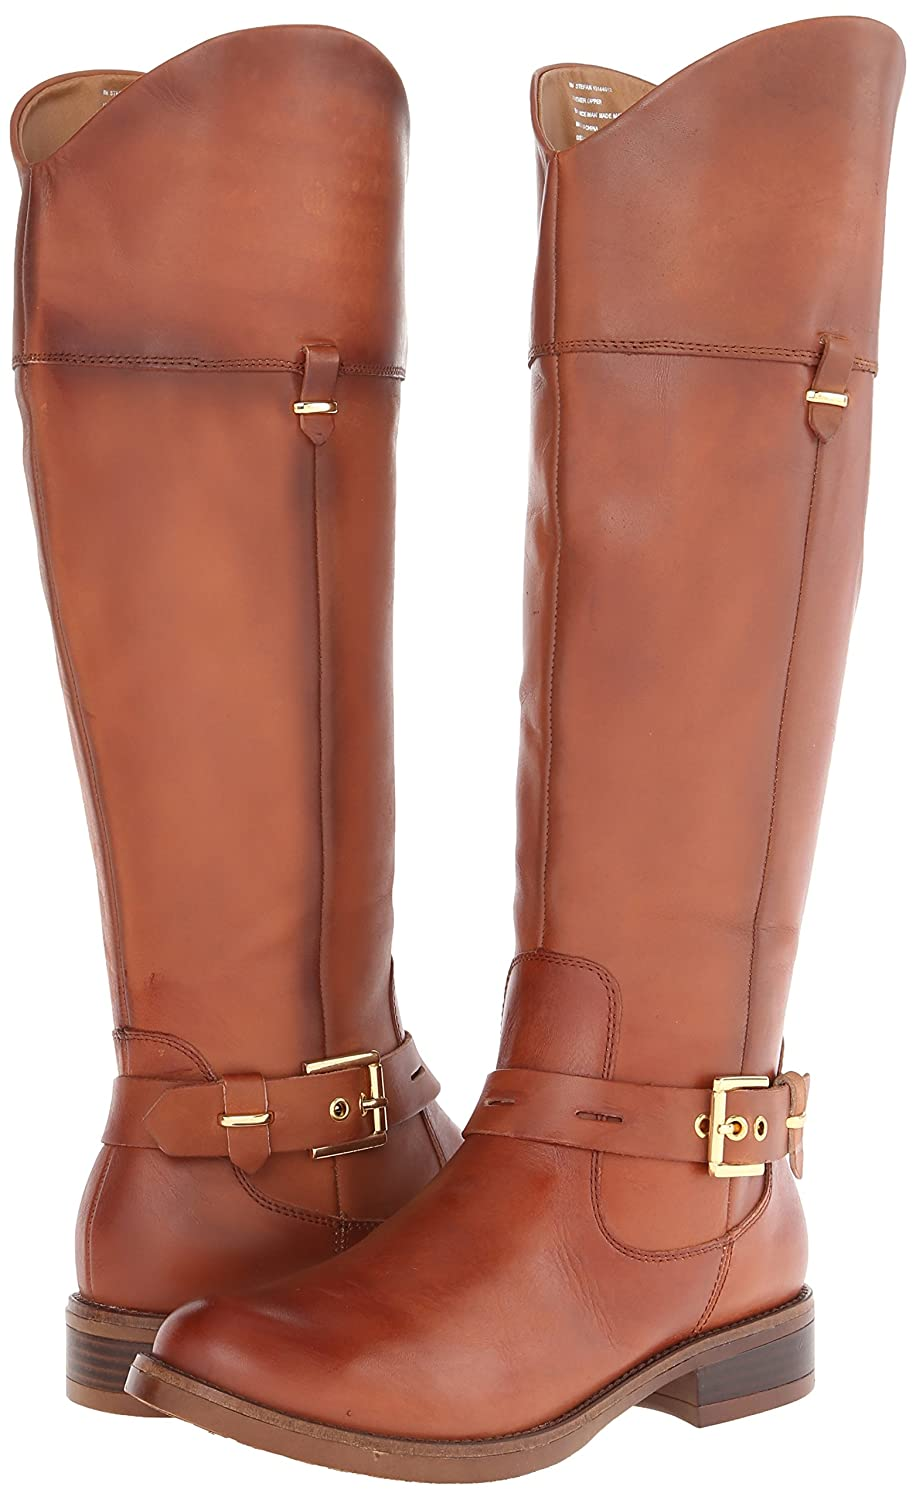 Deluxe Adult Costumes - Assassin's Creed Liberation Women's Stefan Cognac Knee High Leather Buckle Straps Riding Boots by Kensie